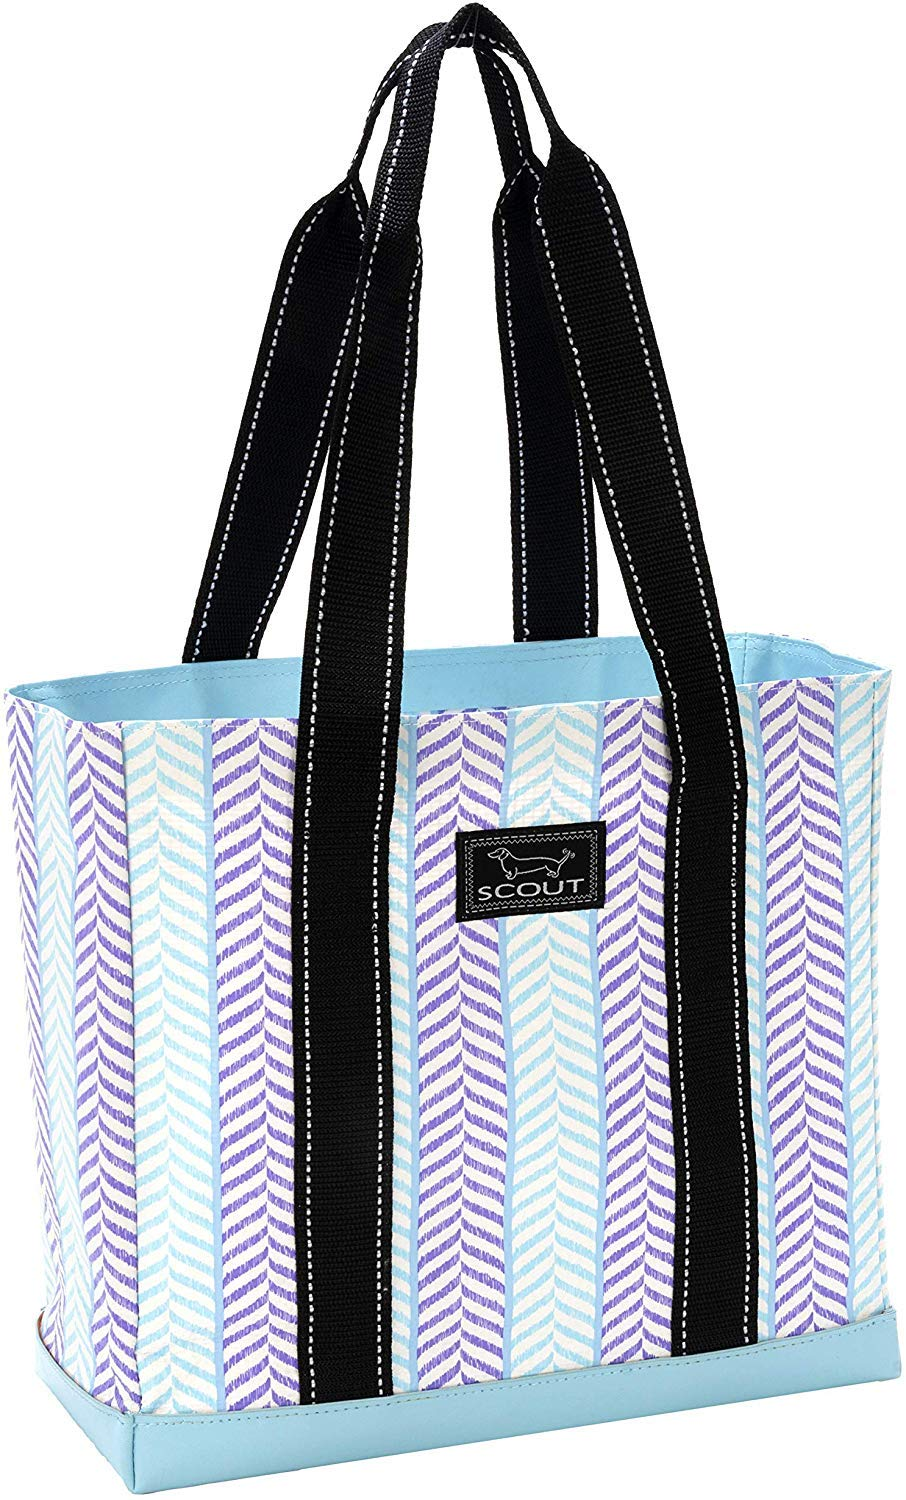 SCOUT Mini Deano Tote Bag, Small Lightweight Utility Tote Bag with Interior Zipper Pocket and Burst-Proof Bottom (Multiple Patterns Available) by SCOUT